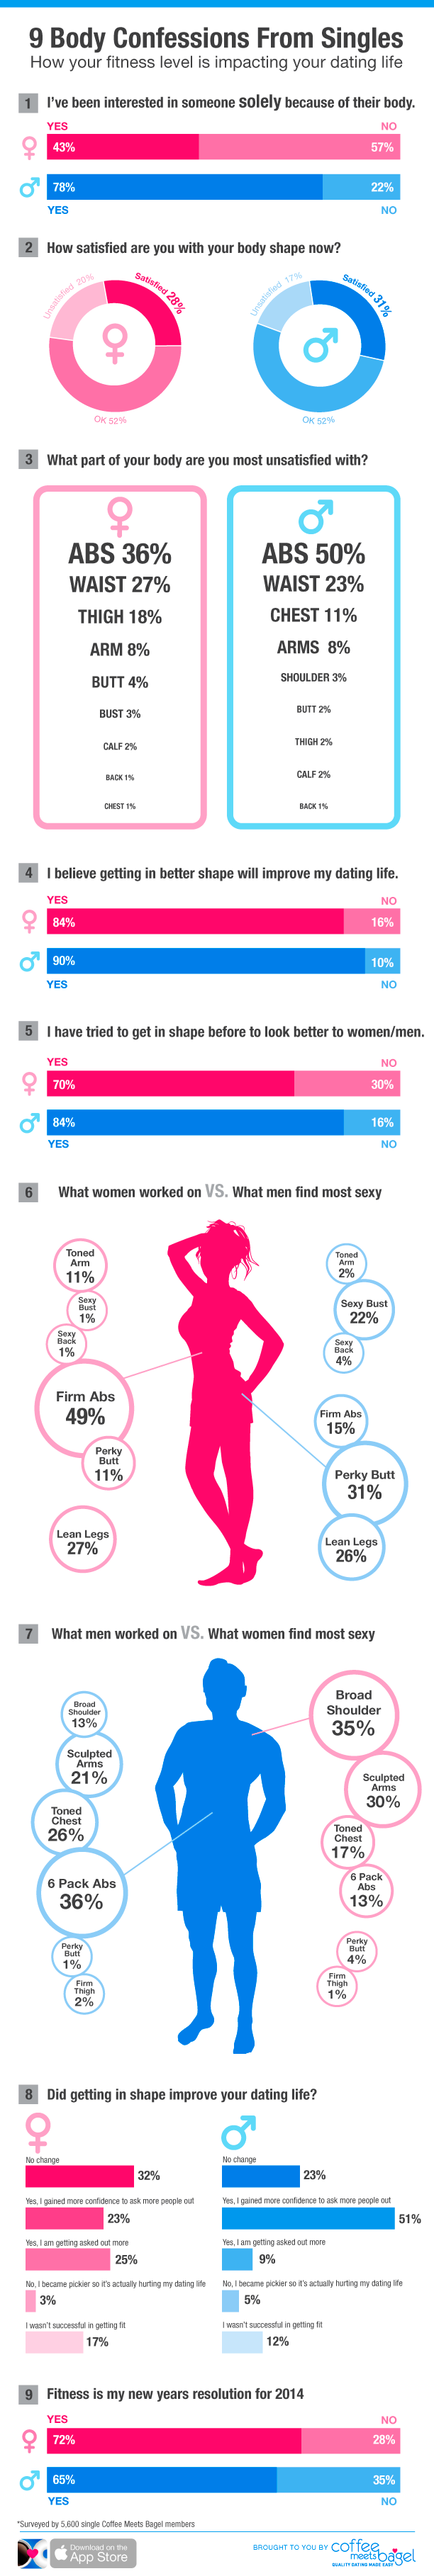 Singles Guide To New Year S Resolutions Around Fitness Confessions Infographic Relationship